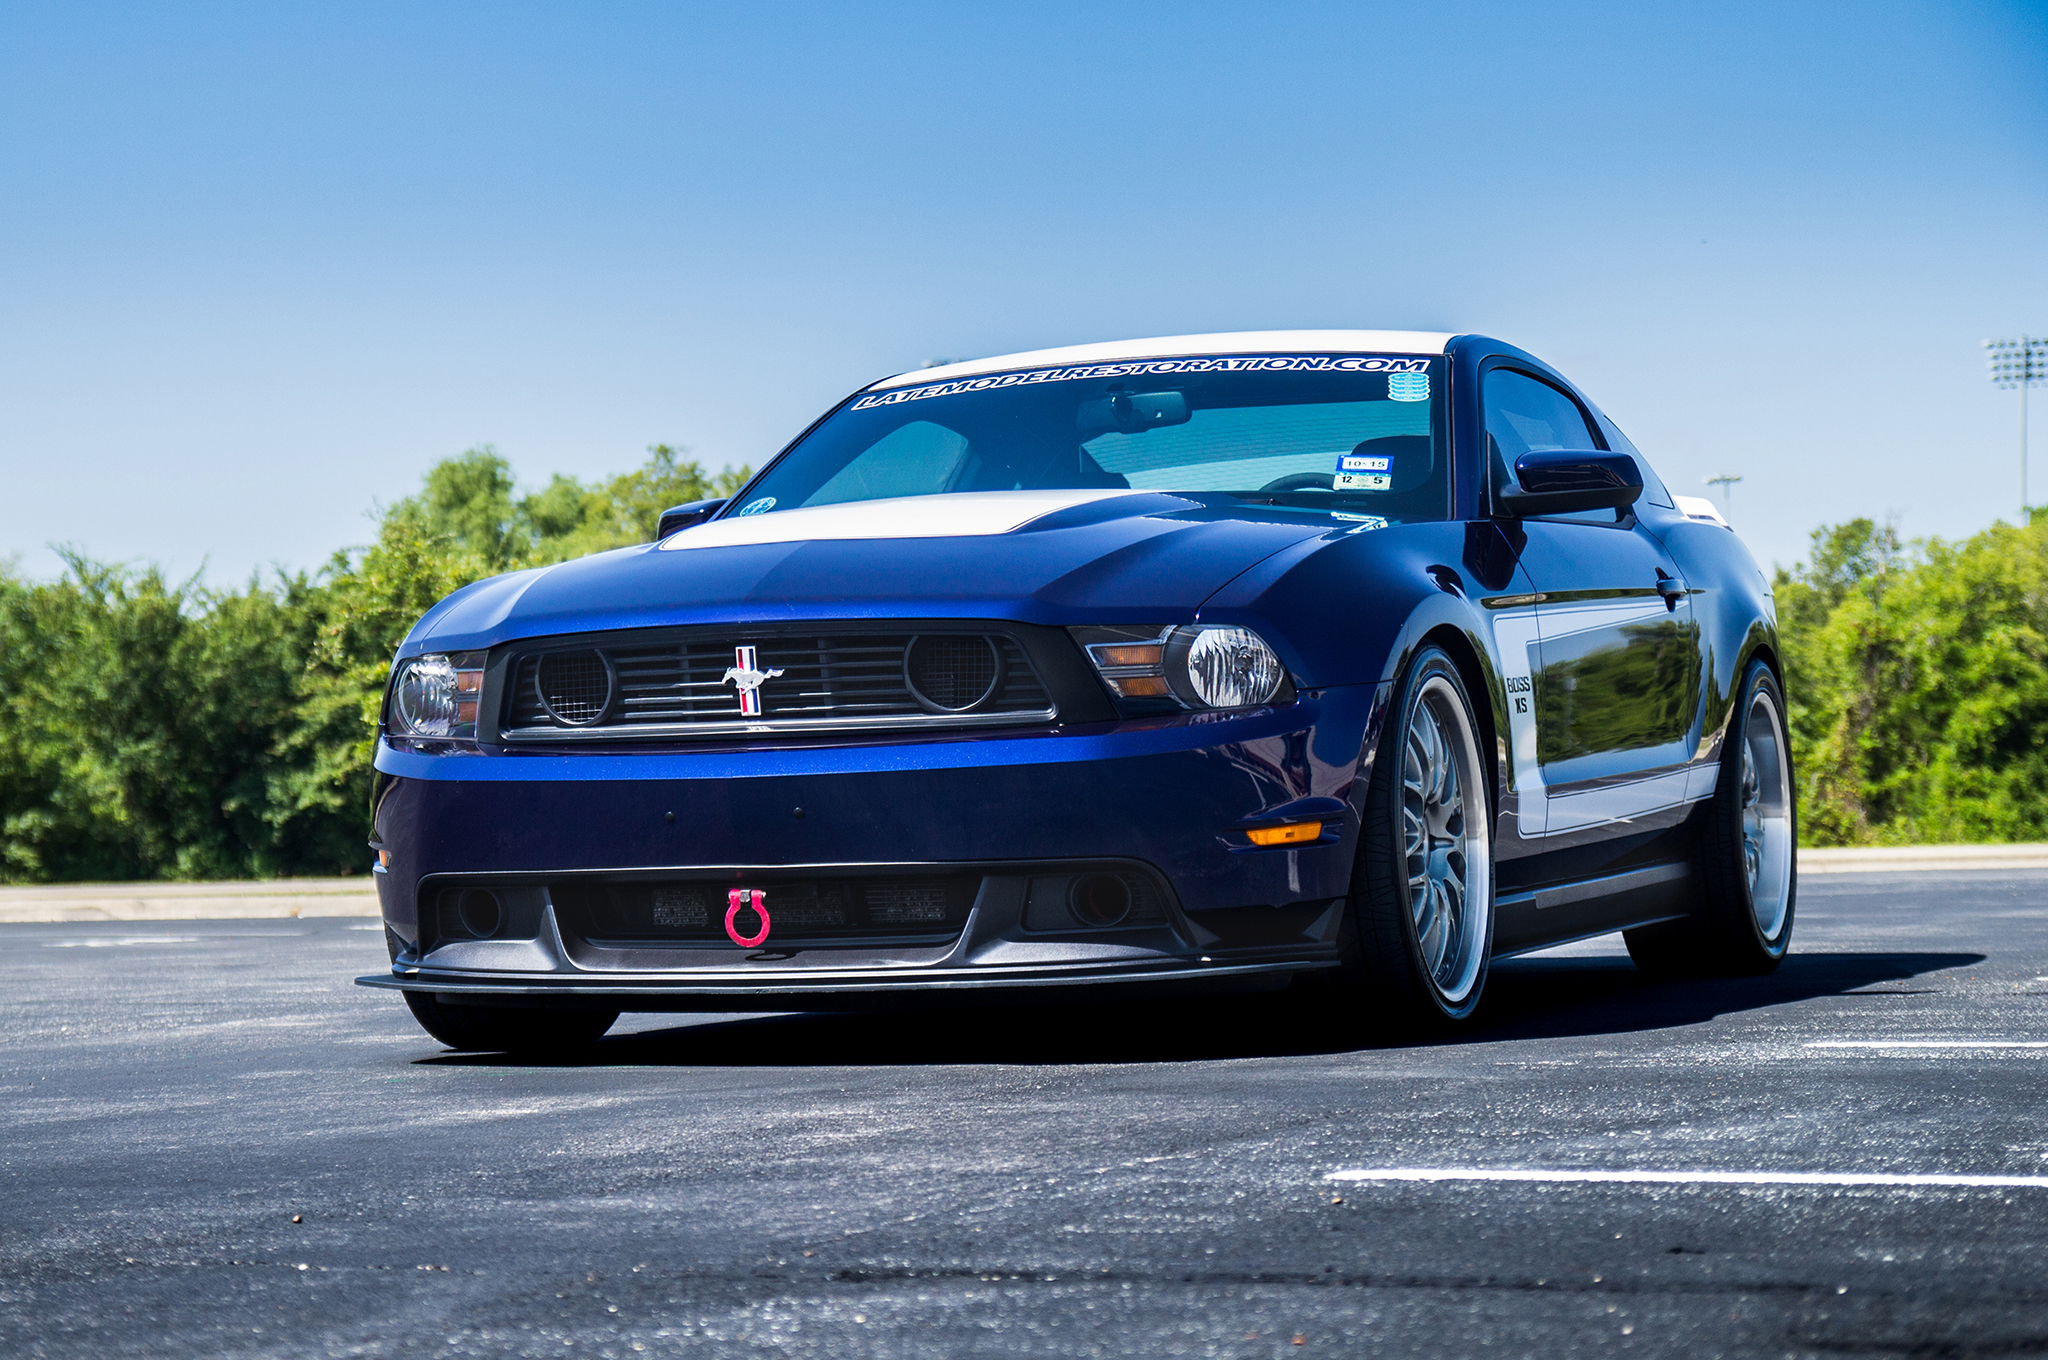 2015 Mustang Wheels >> Late Model Restoration's Kona Blue 2011 Ford Mustang is the Ultimate Mail Order Performance ...